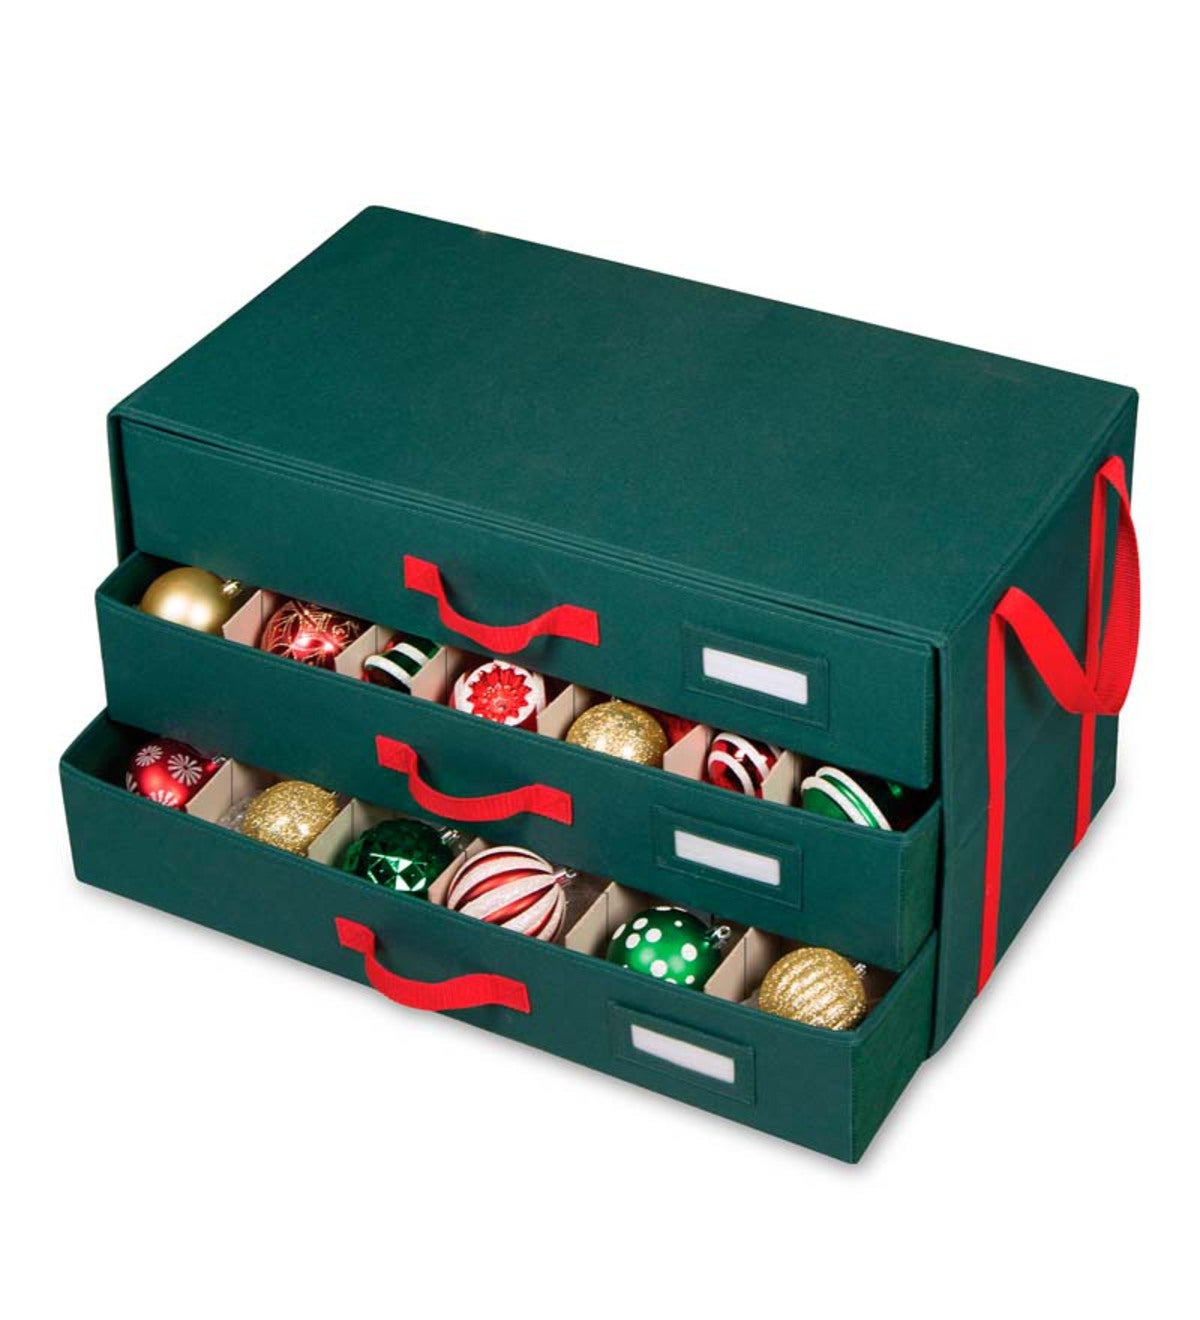 Christmas Ornament Storage Chest With Drawers